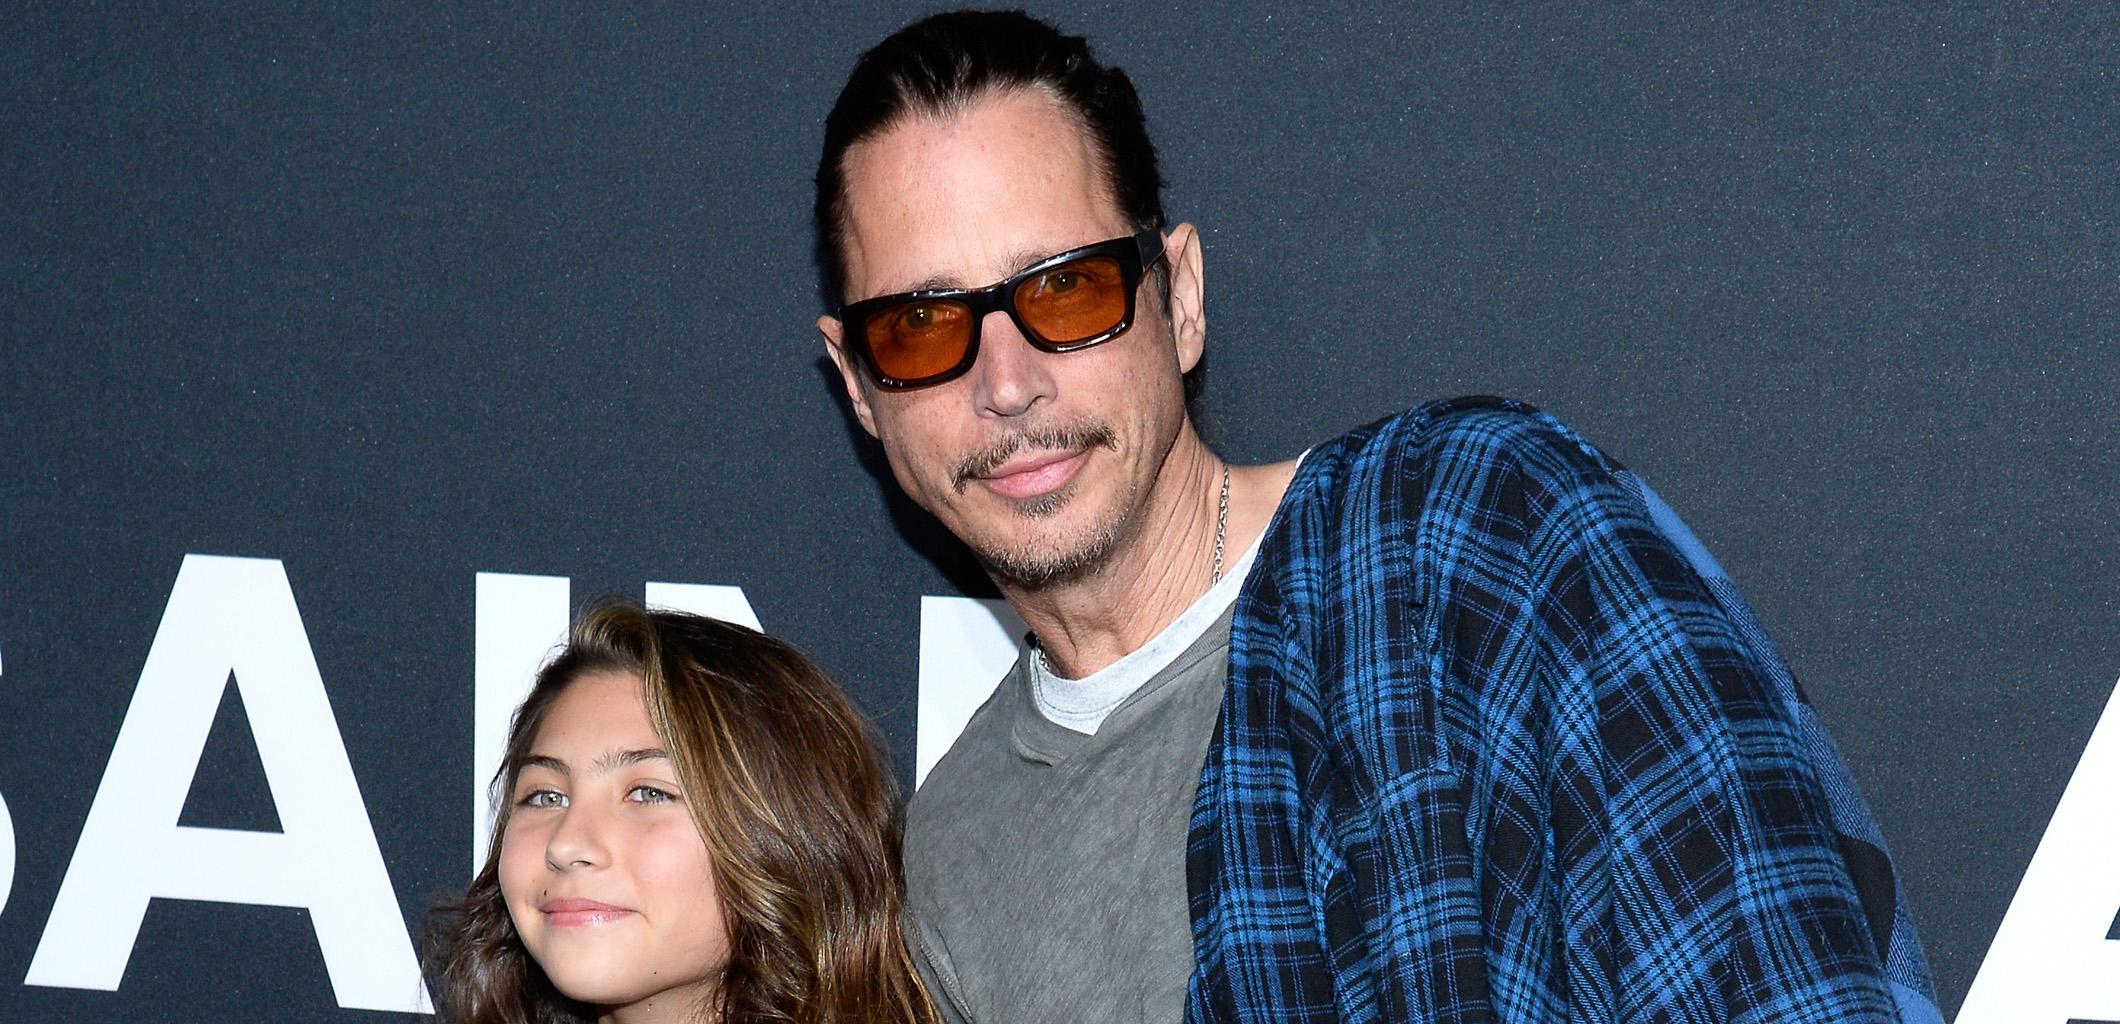 Hear Chris Cornell Cover Princes Nothing Compares 2 U With